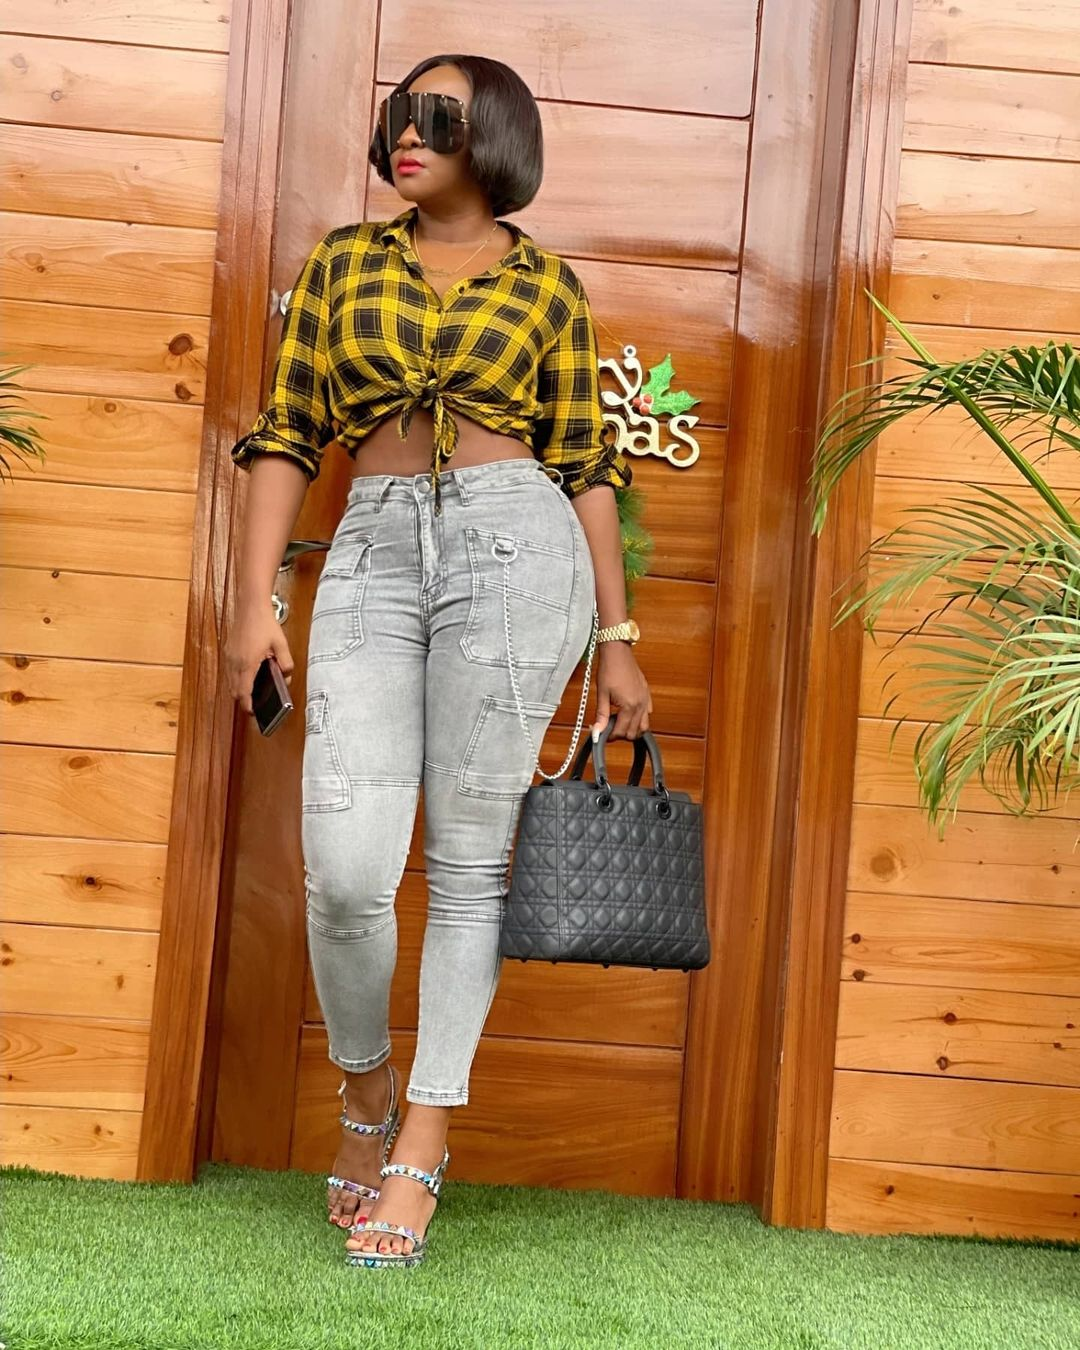 Ini Edo always keeping it real and simple